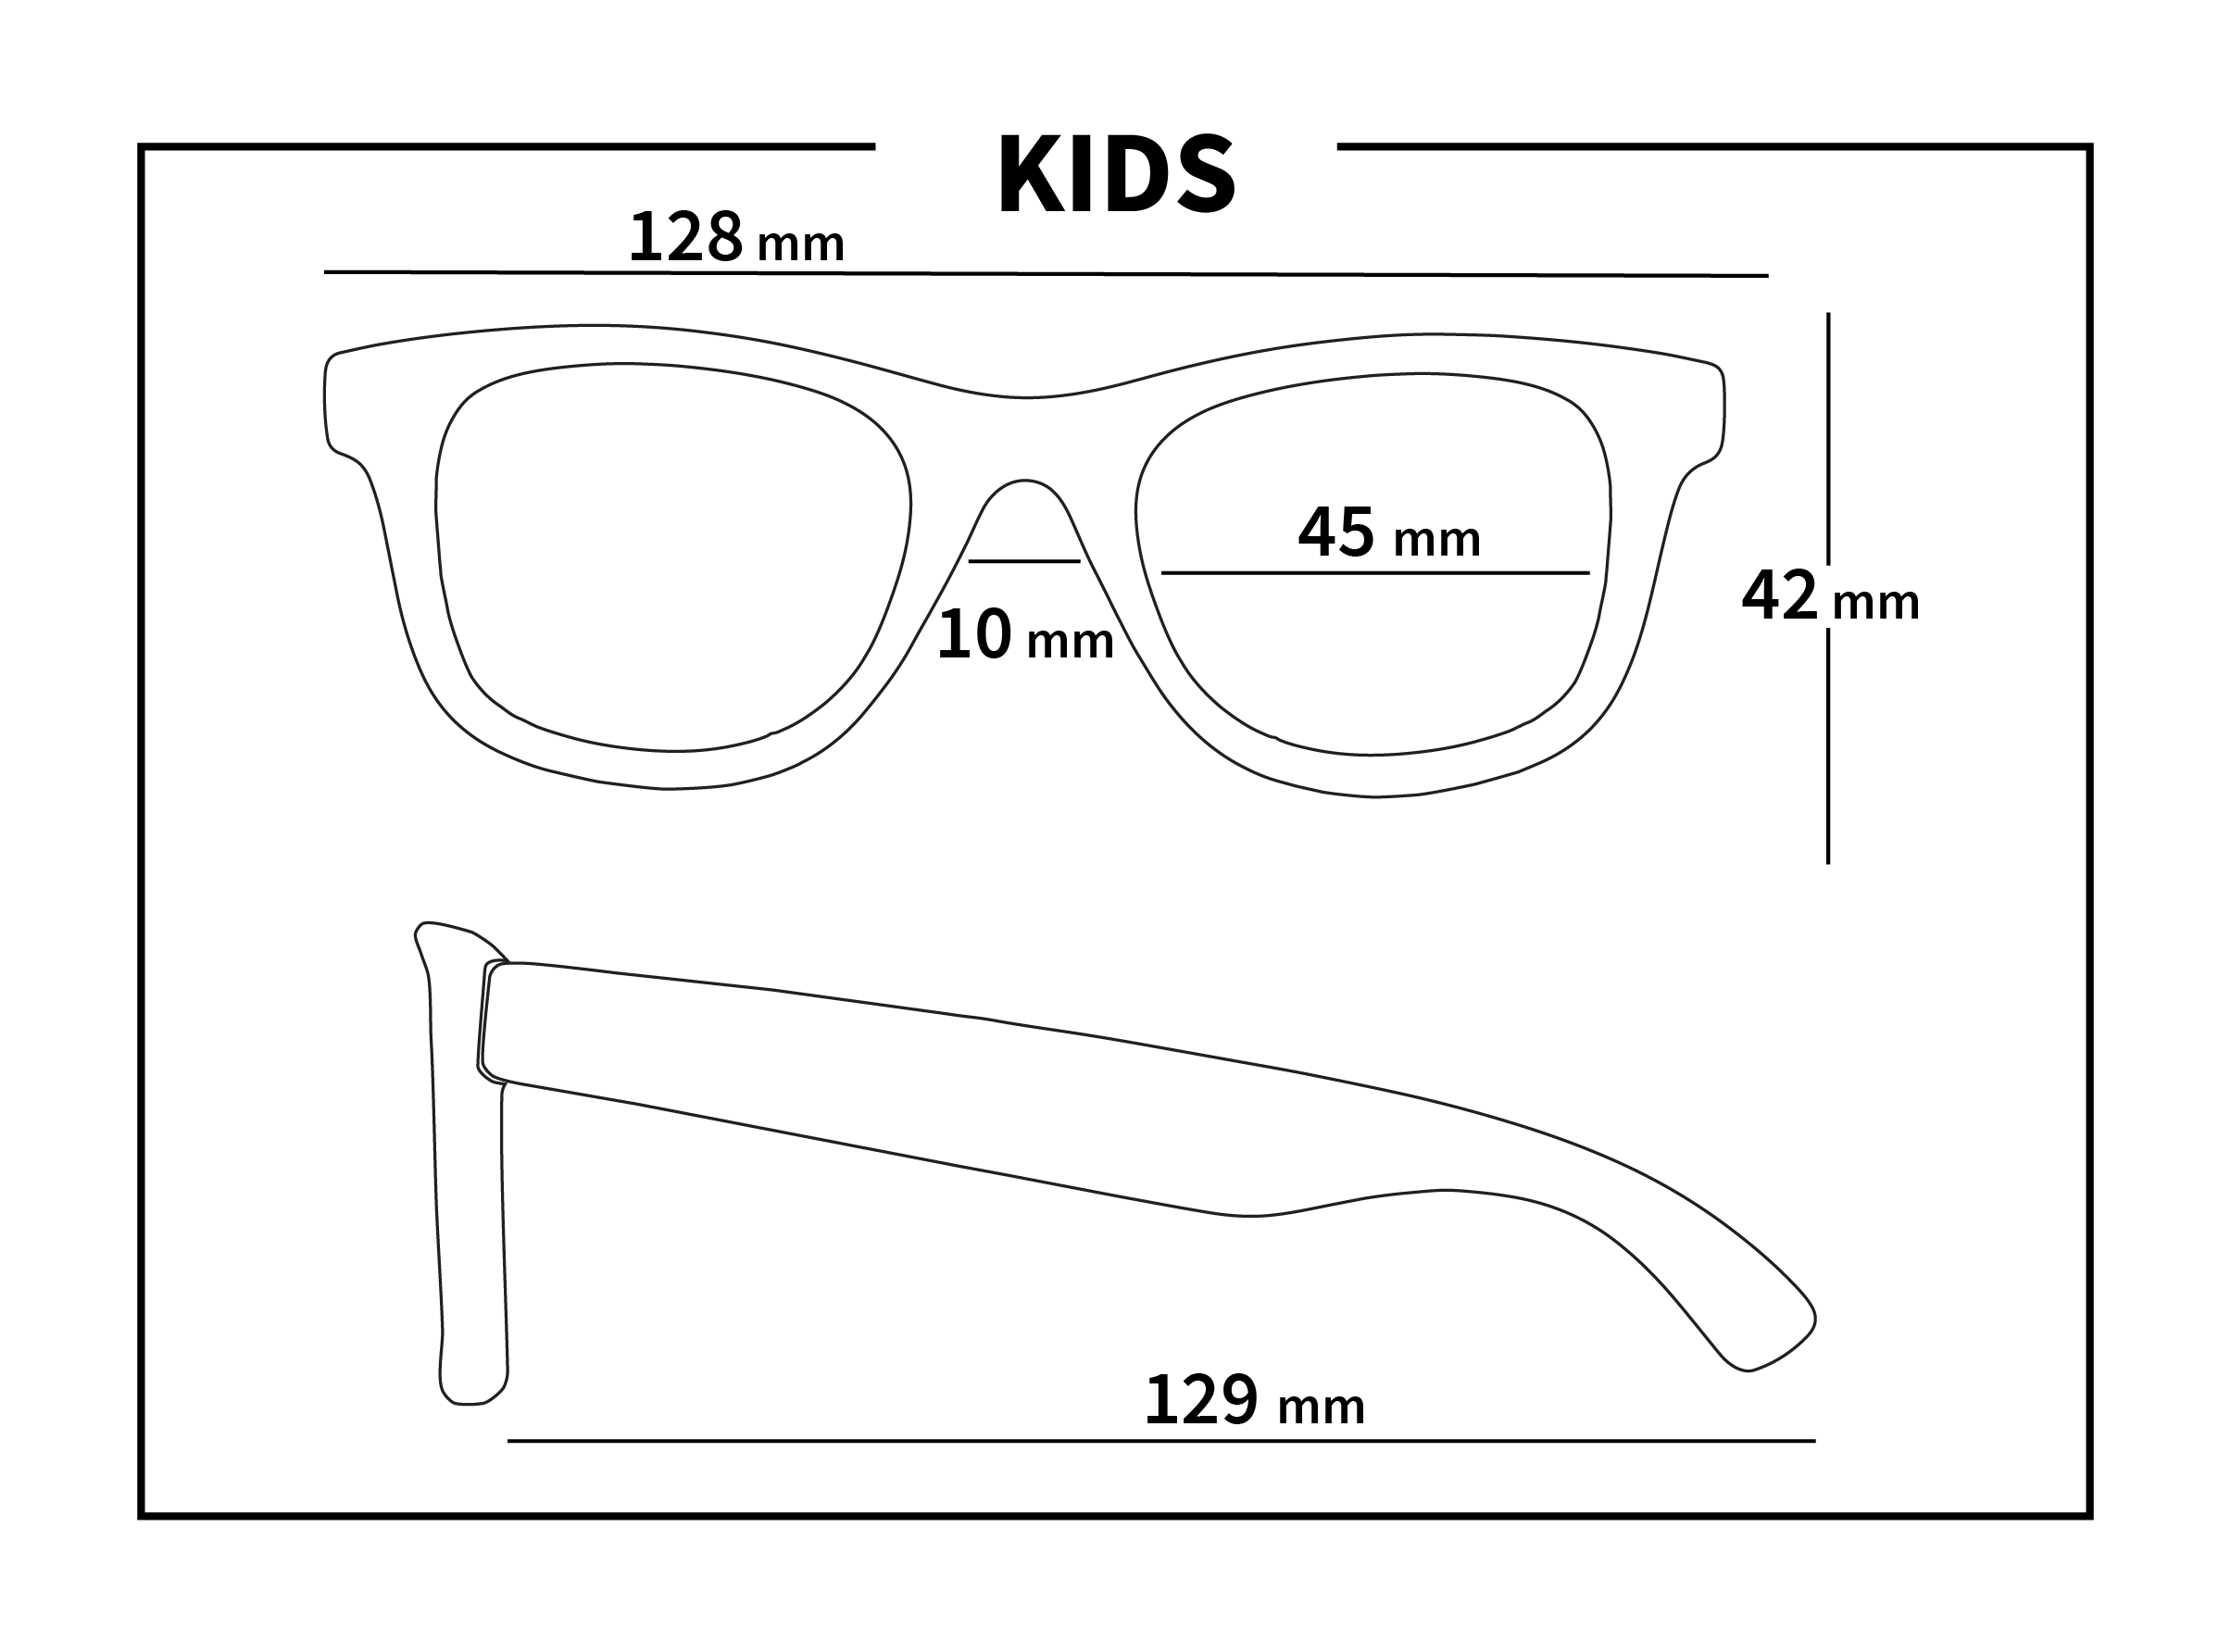 758e1a2c35 Floating Sunglasses - The St. Croix Kidz - KZ